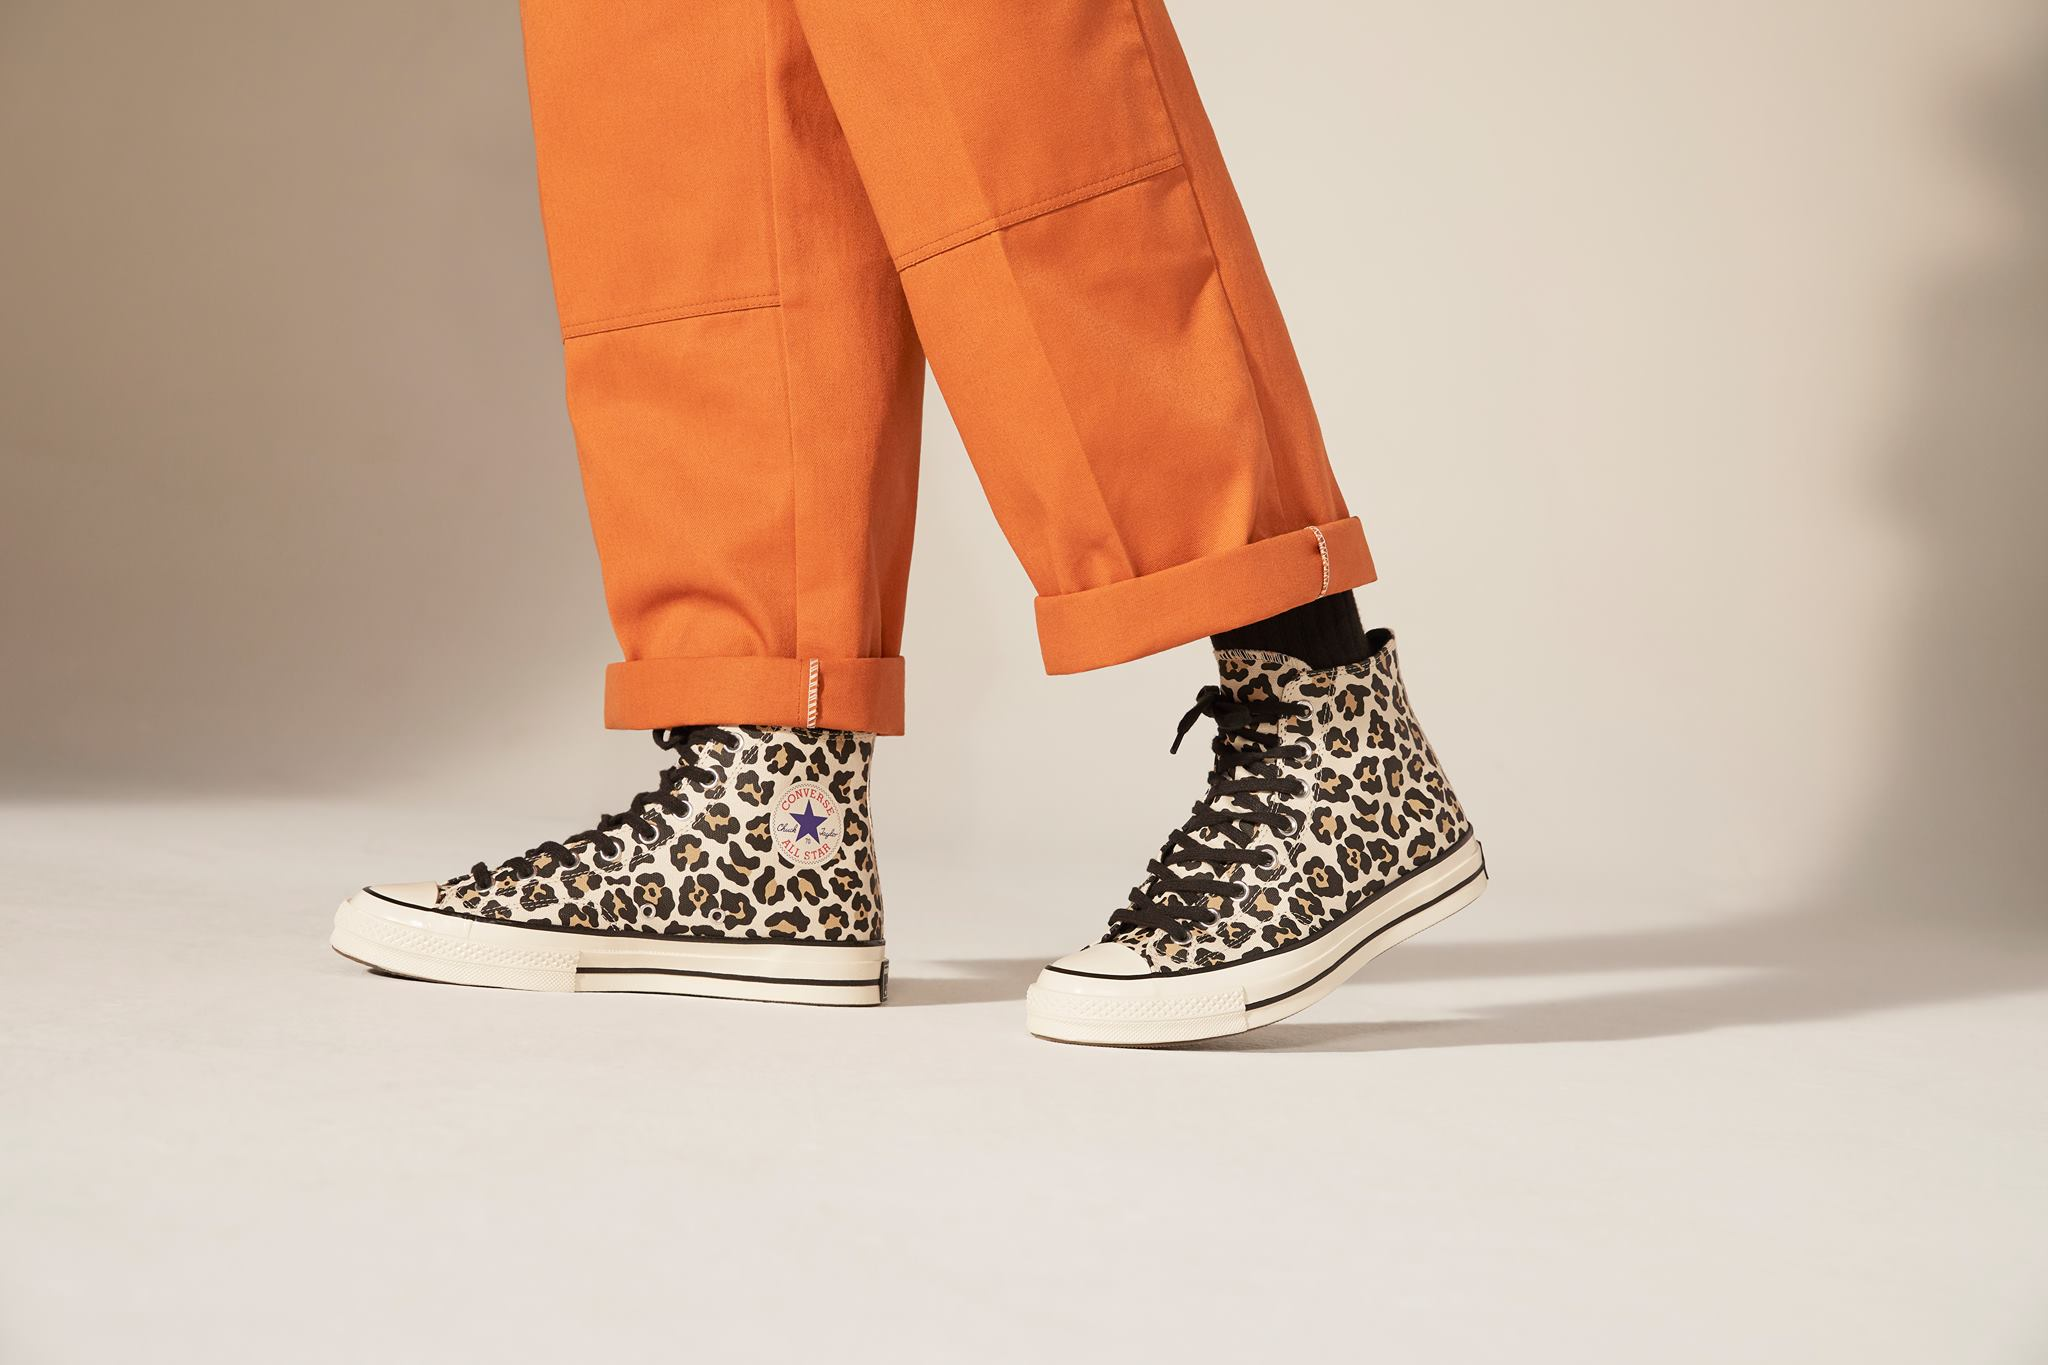 converse - In some ways, you know Converse. They've been making Chuck Taylor All Star and One Star sneakers since they started over a century ago. What is important to know is, when you wear Converse products, you create a culture of authentic street style simply by being yourself.